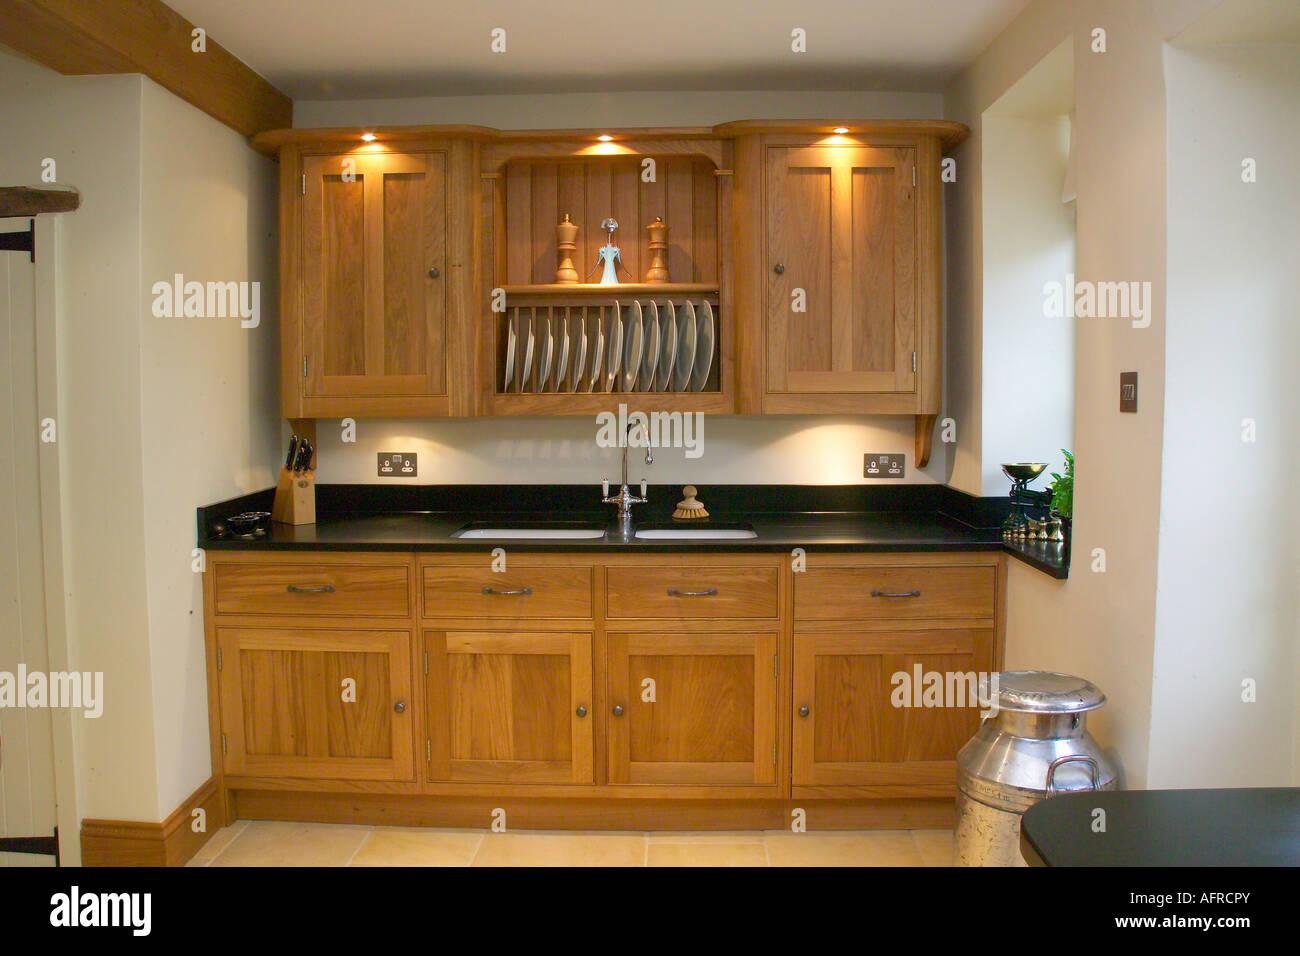 Lighting above wooden kitchen cupboards with built in sink in ...